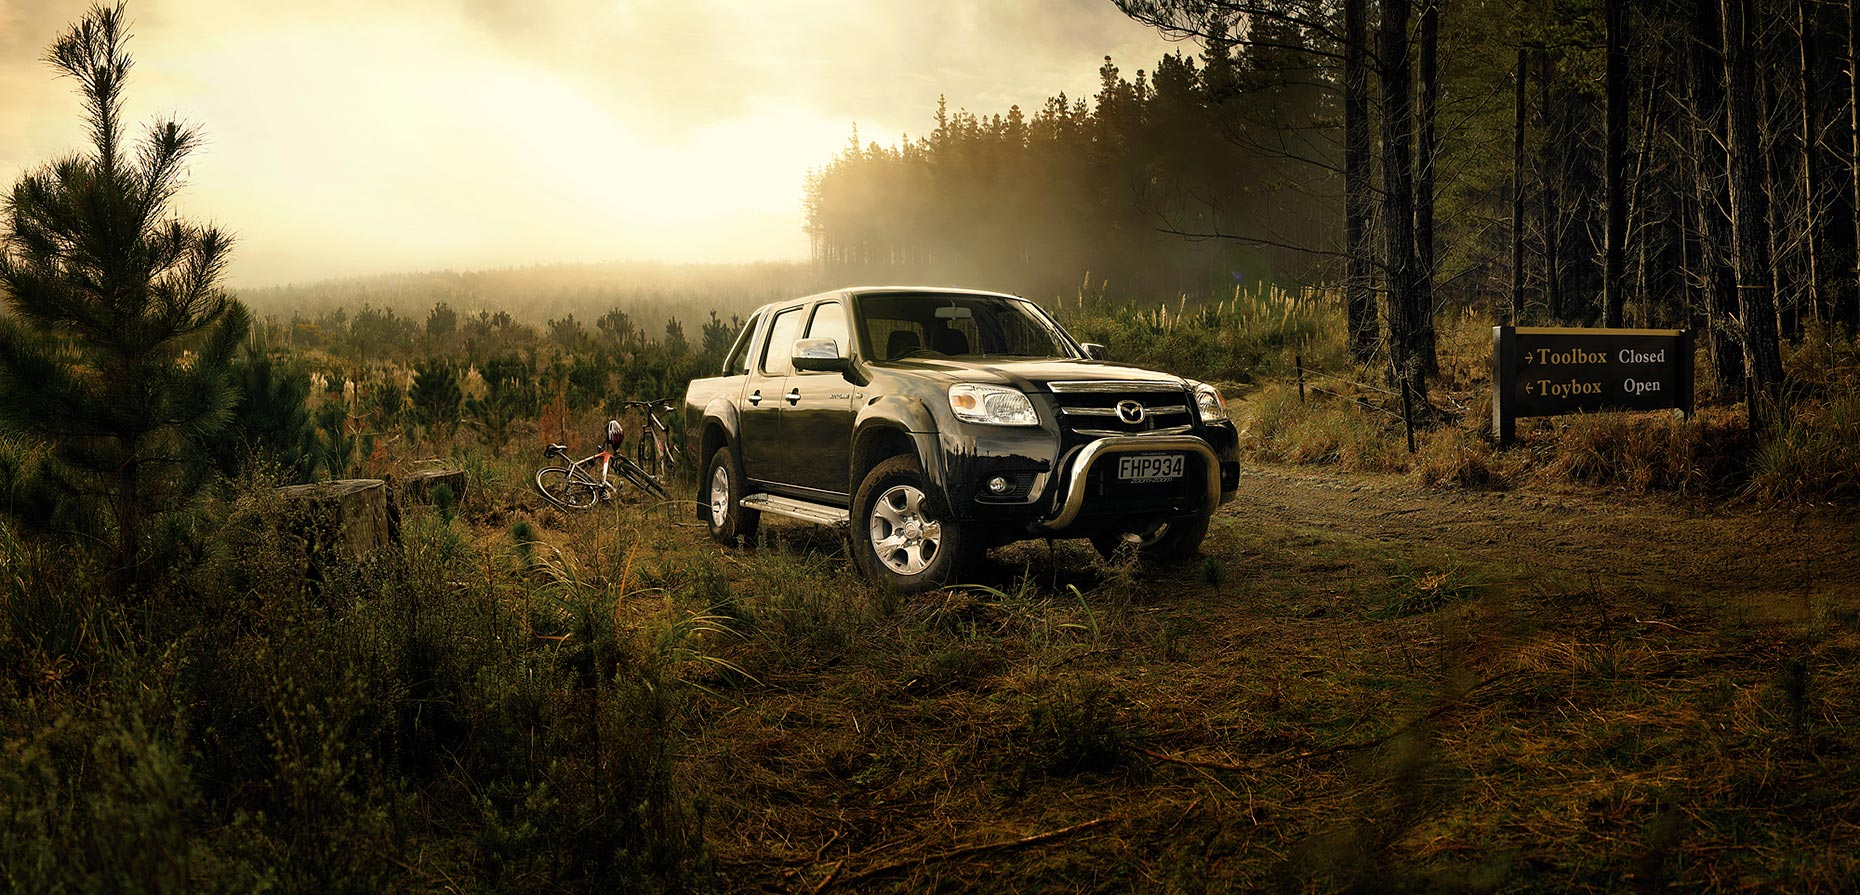 MAZDA_4x4_FOREST_WIDE_WEBSITE.jpg